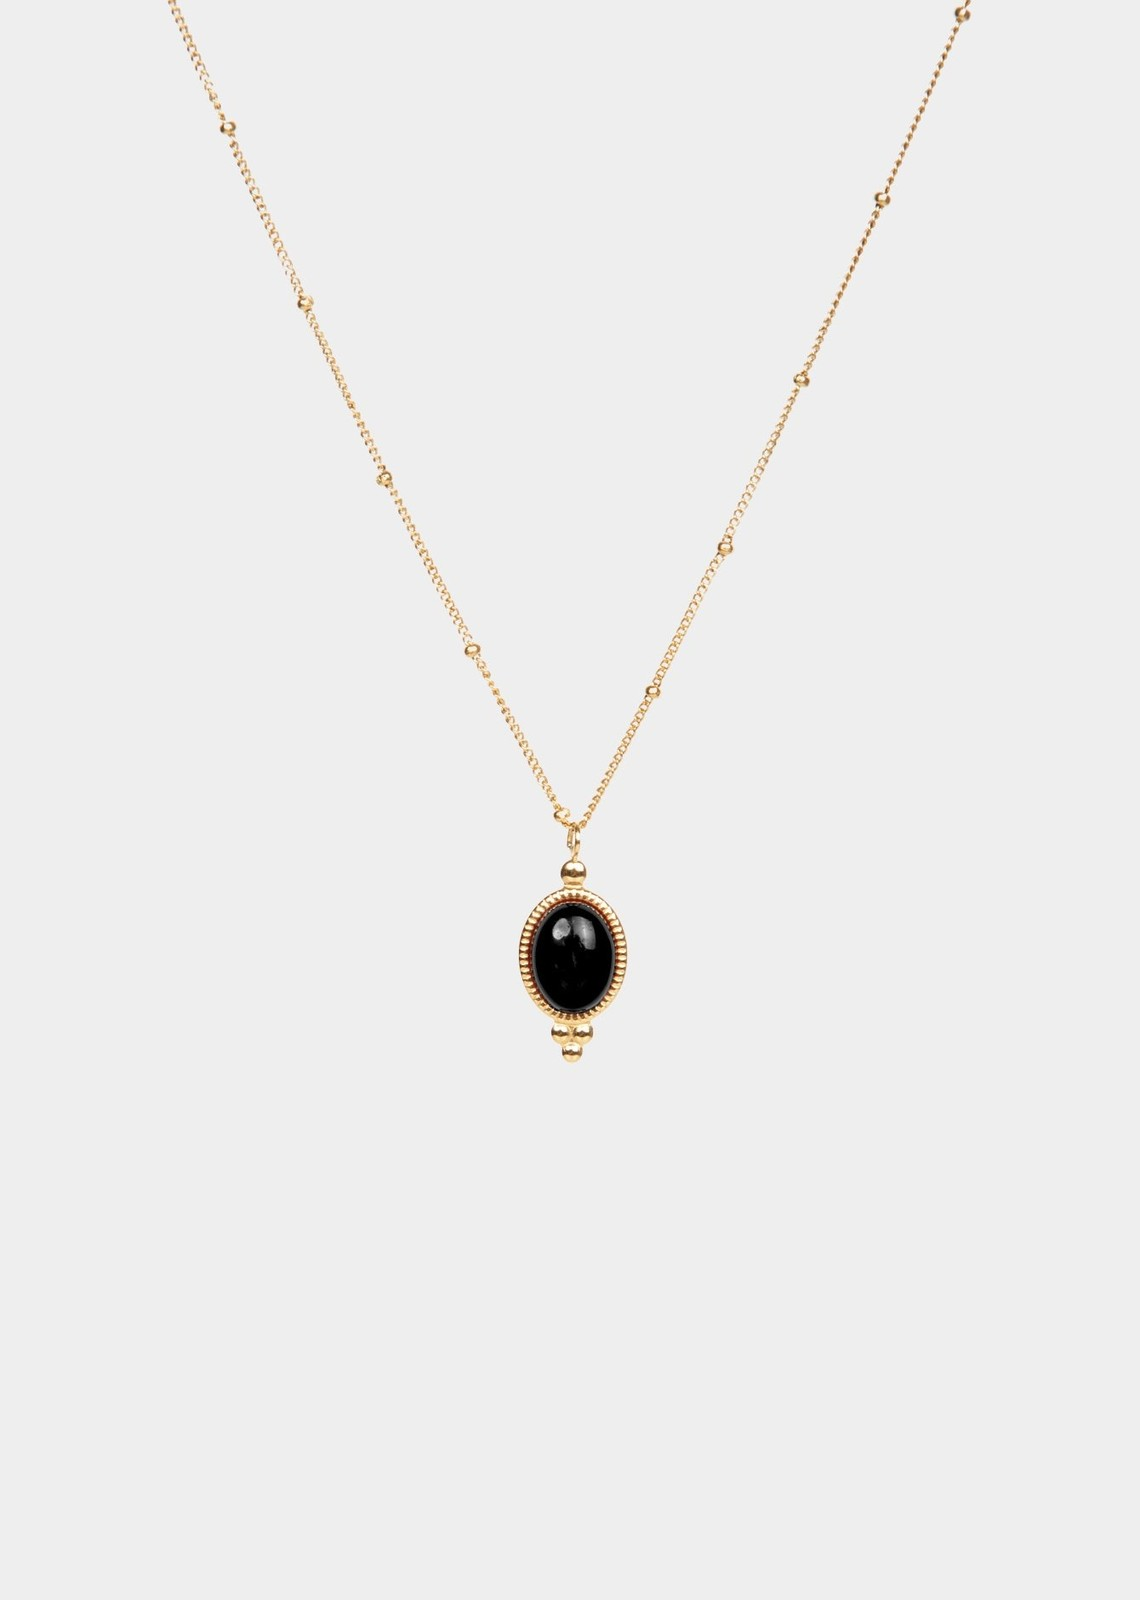 Stone black necklace